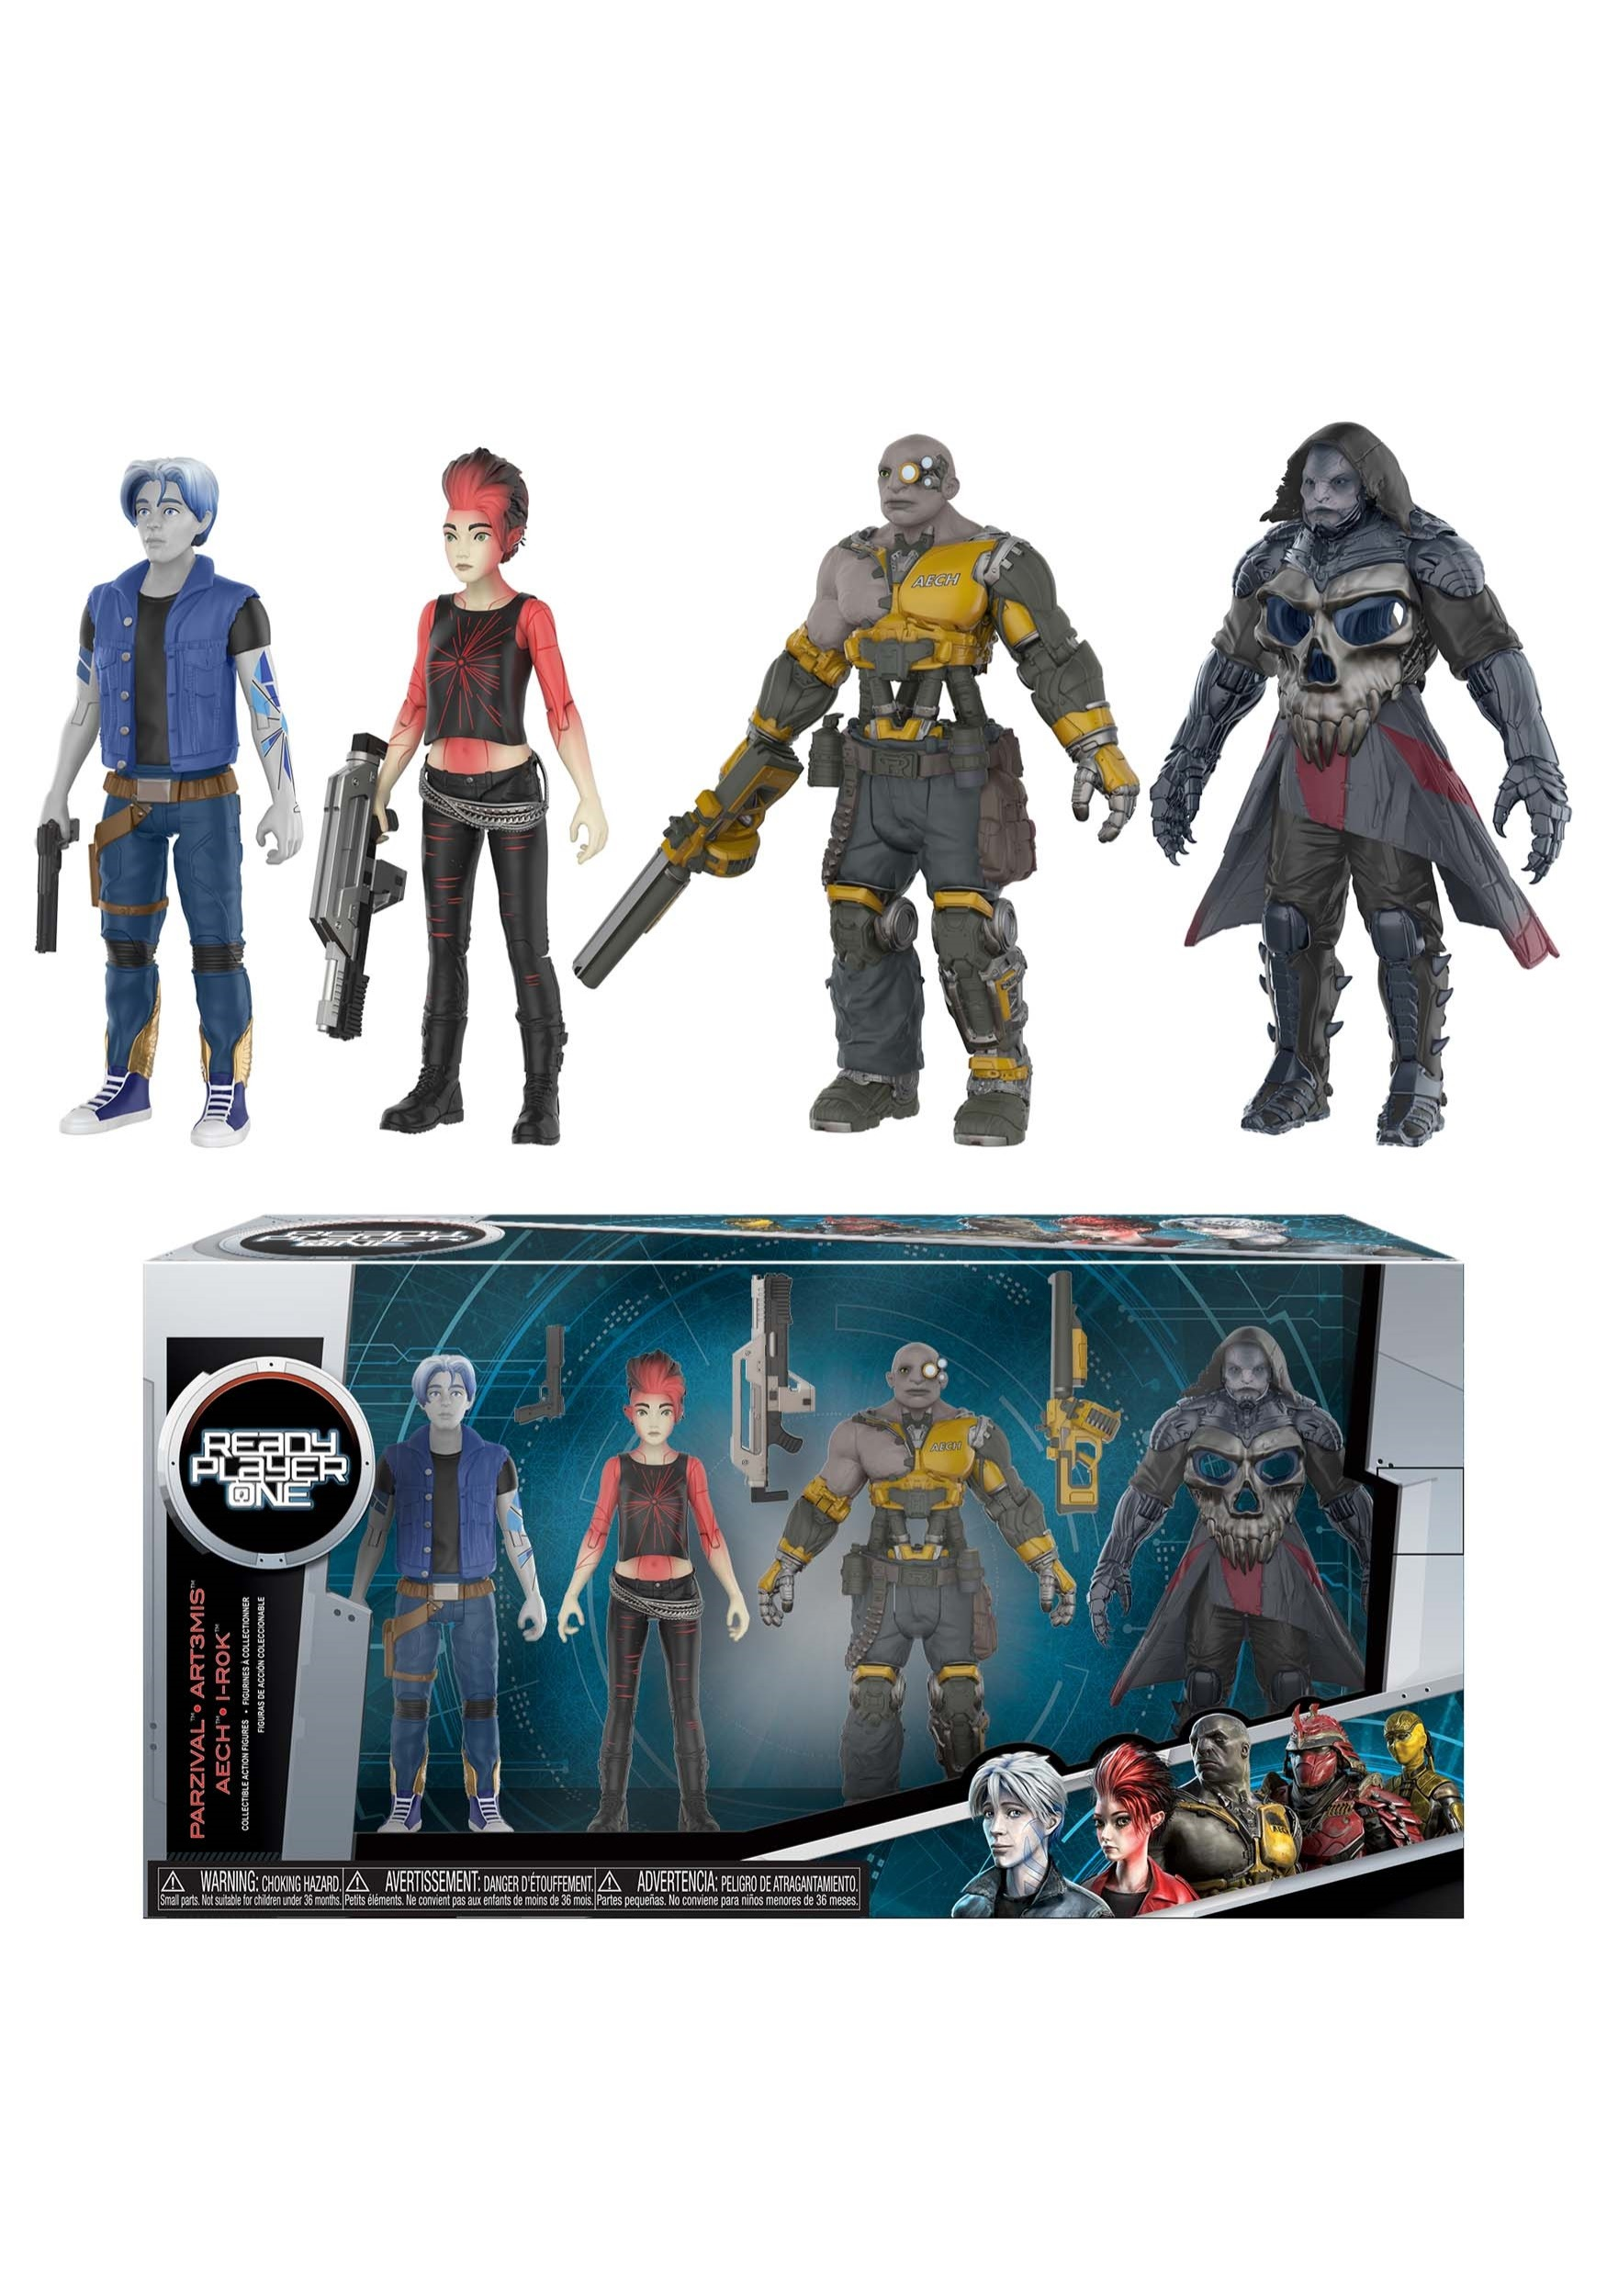 Ready Player One: Action Figure 4 Pack FN22062